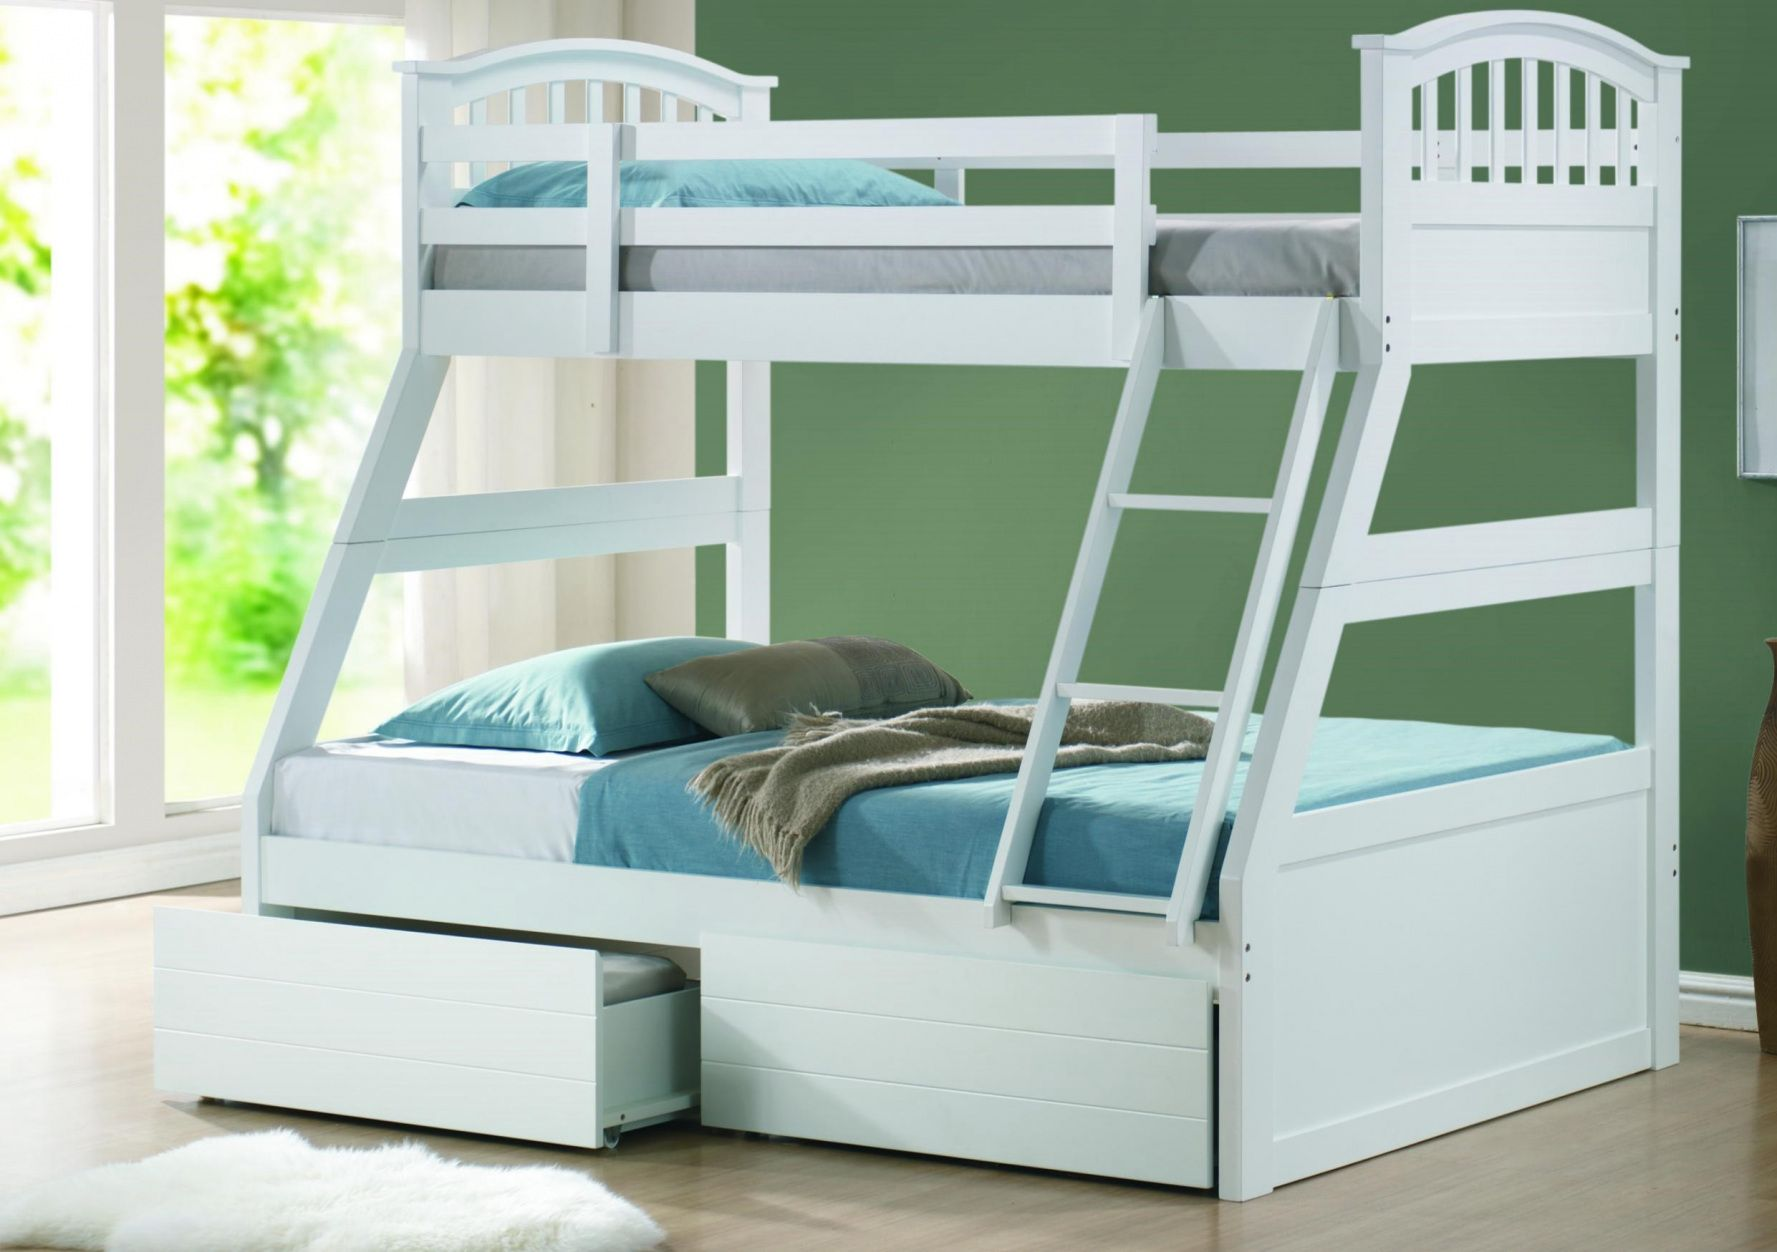 Double loft bed with stairs   Childrens Double Bunk Beds  Simple Interior Design for Bedroom